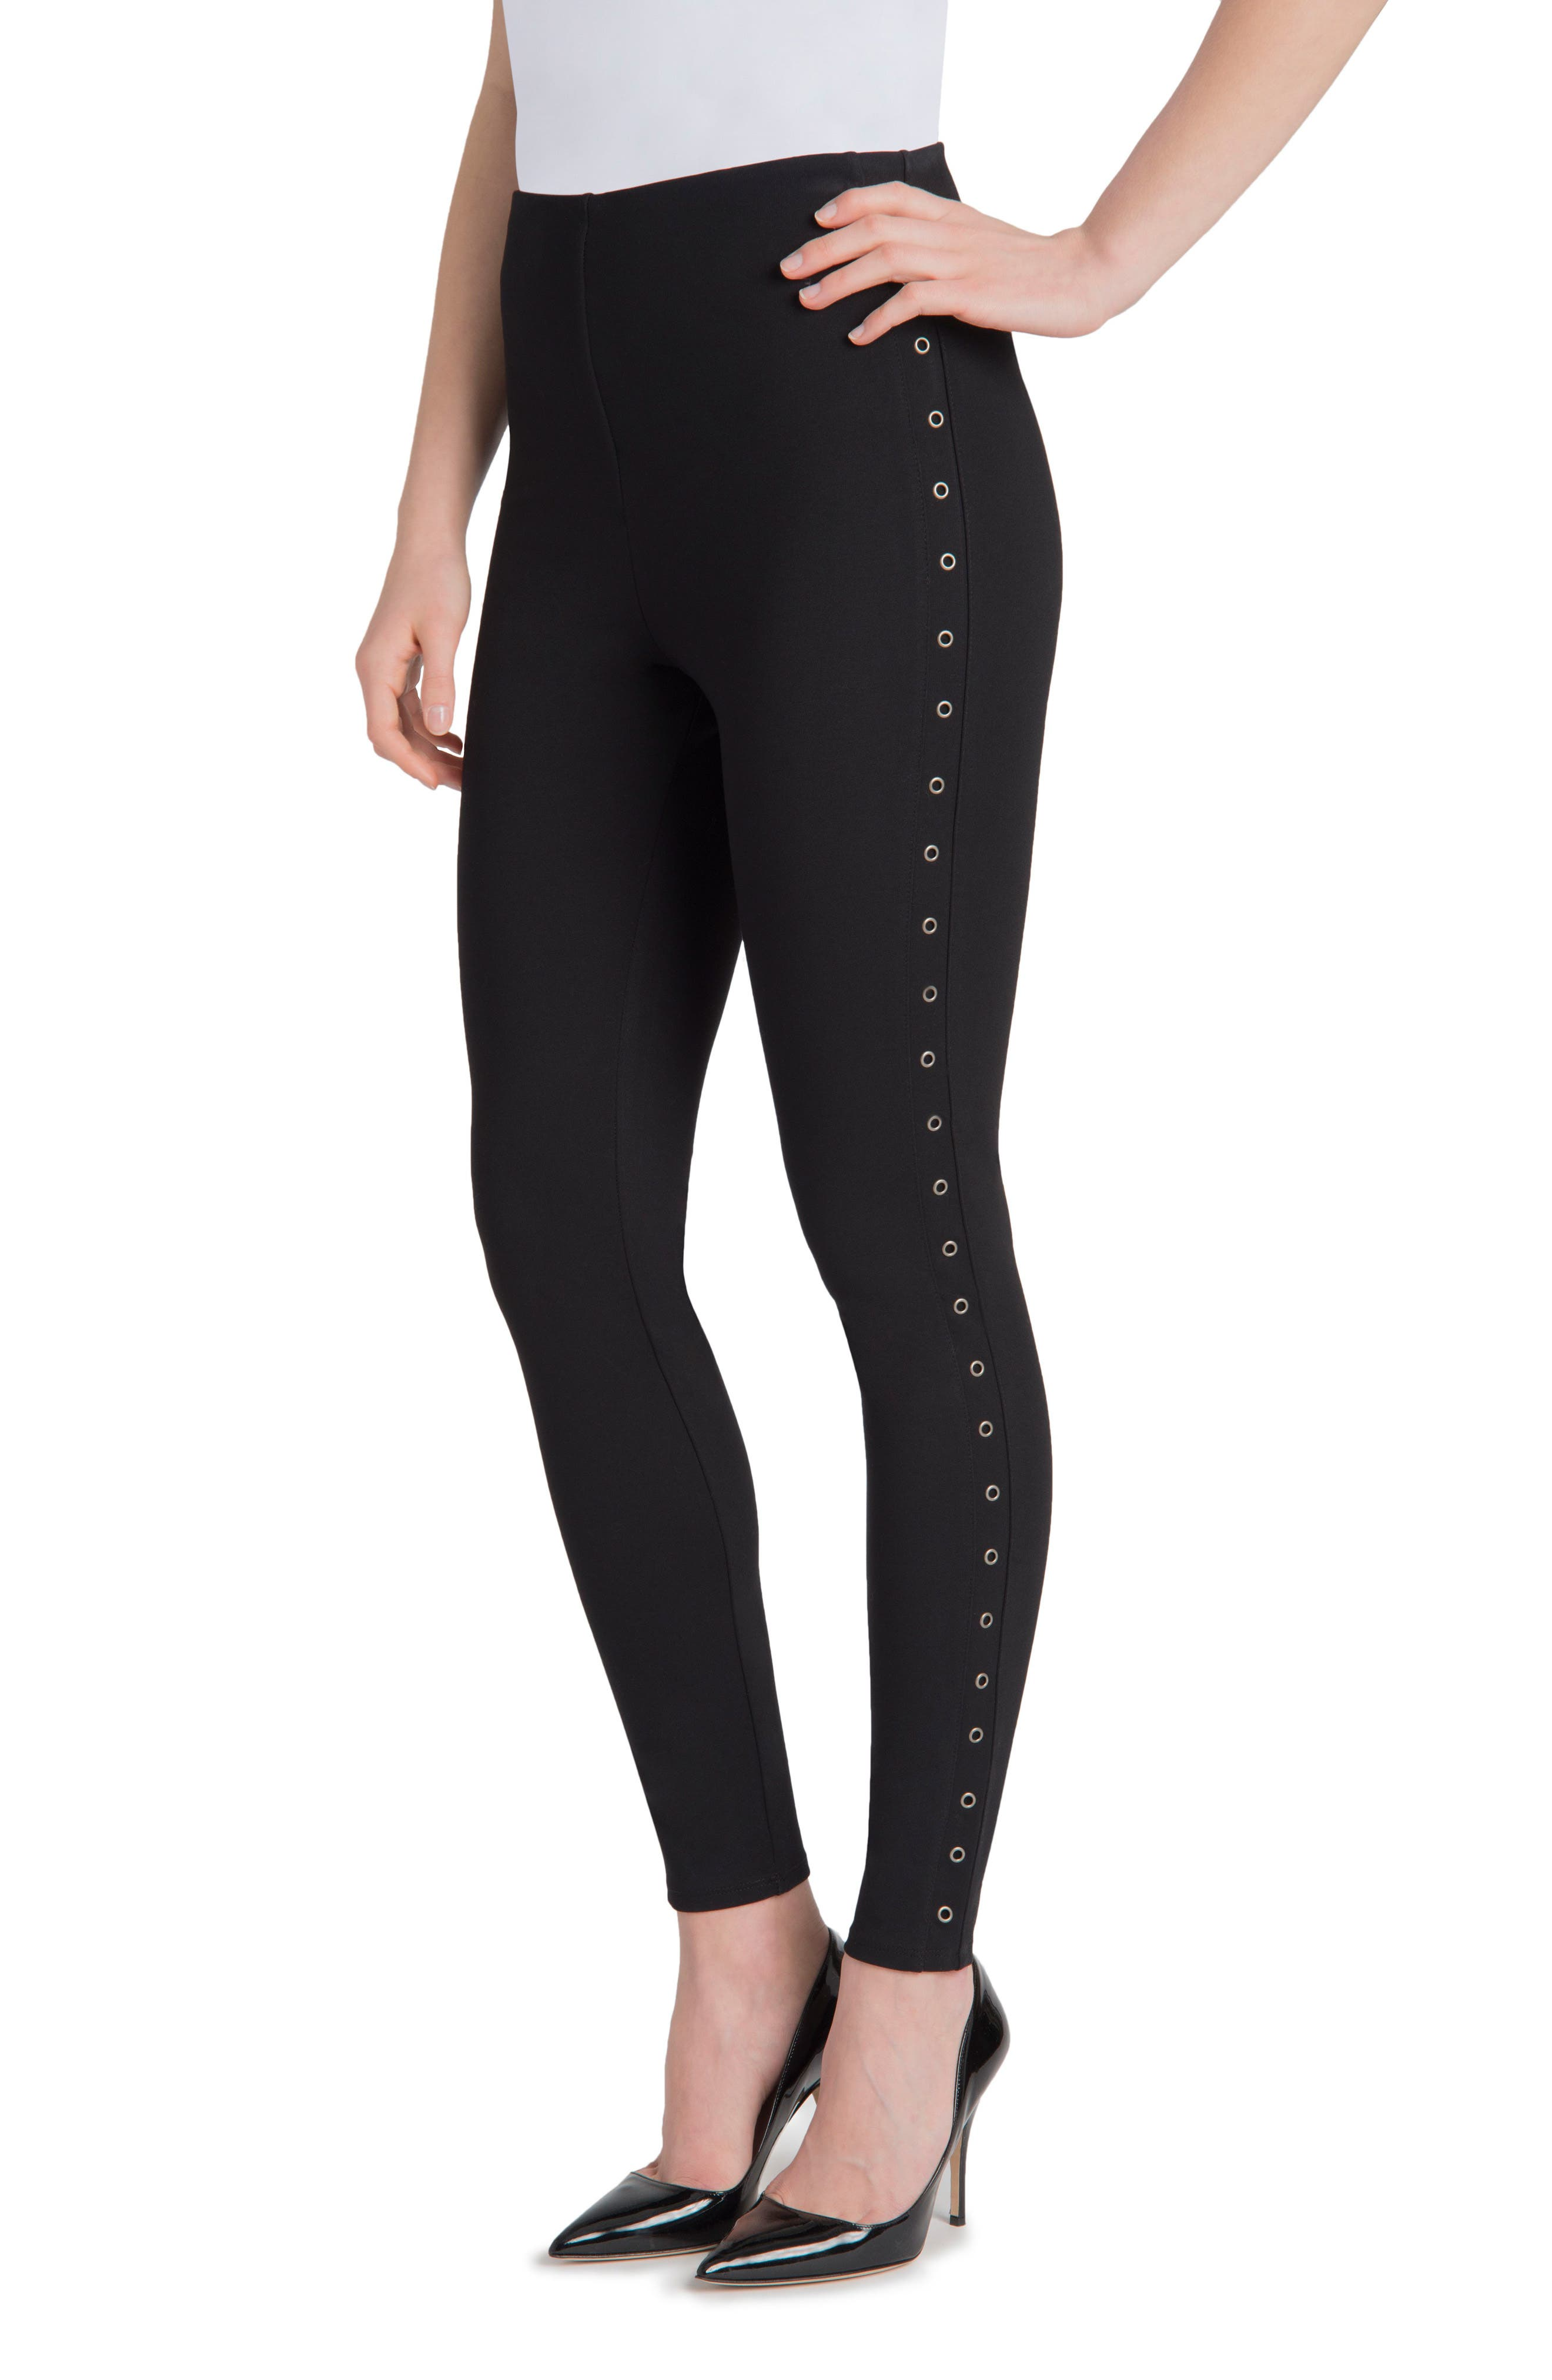 Lyssé Grommet High Waist Leggings